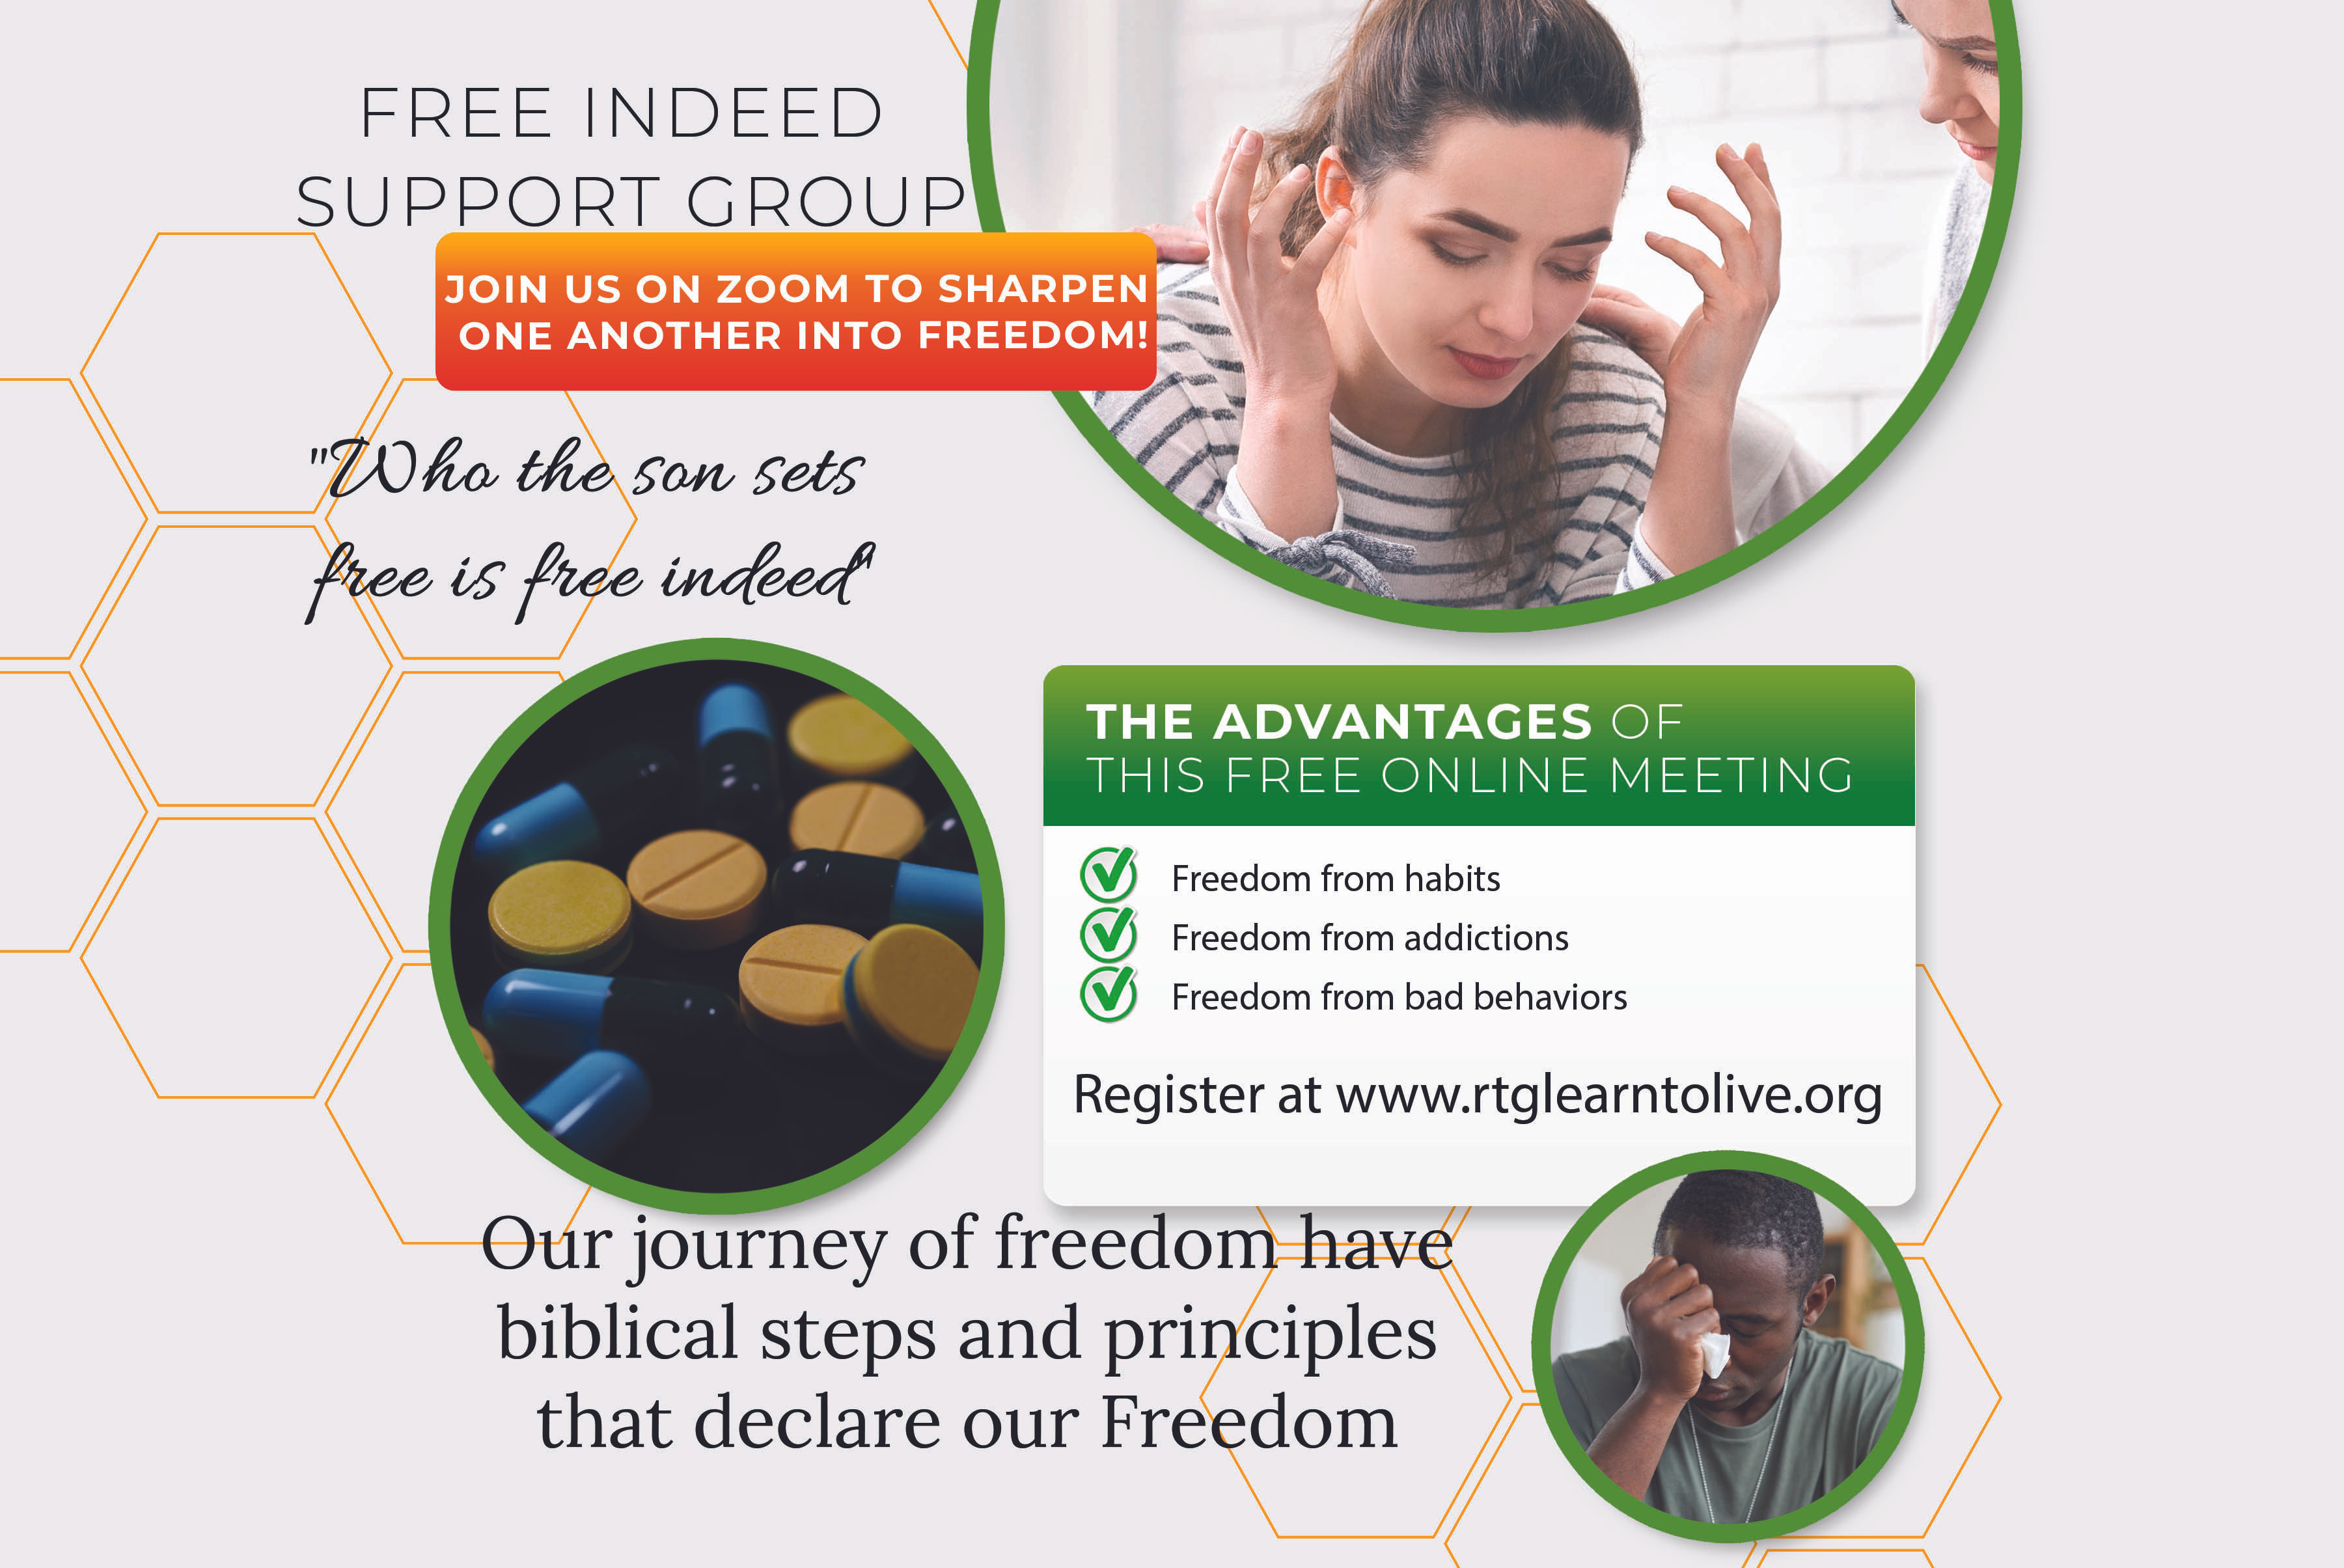 Free Indeed Support Group